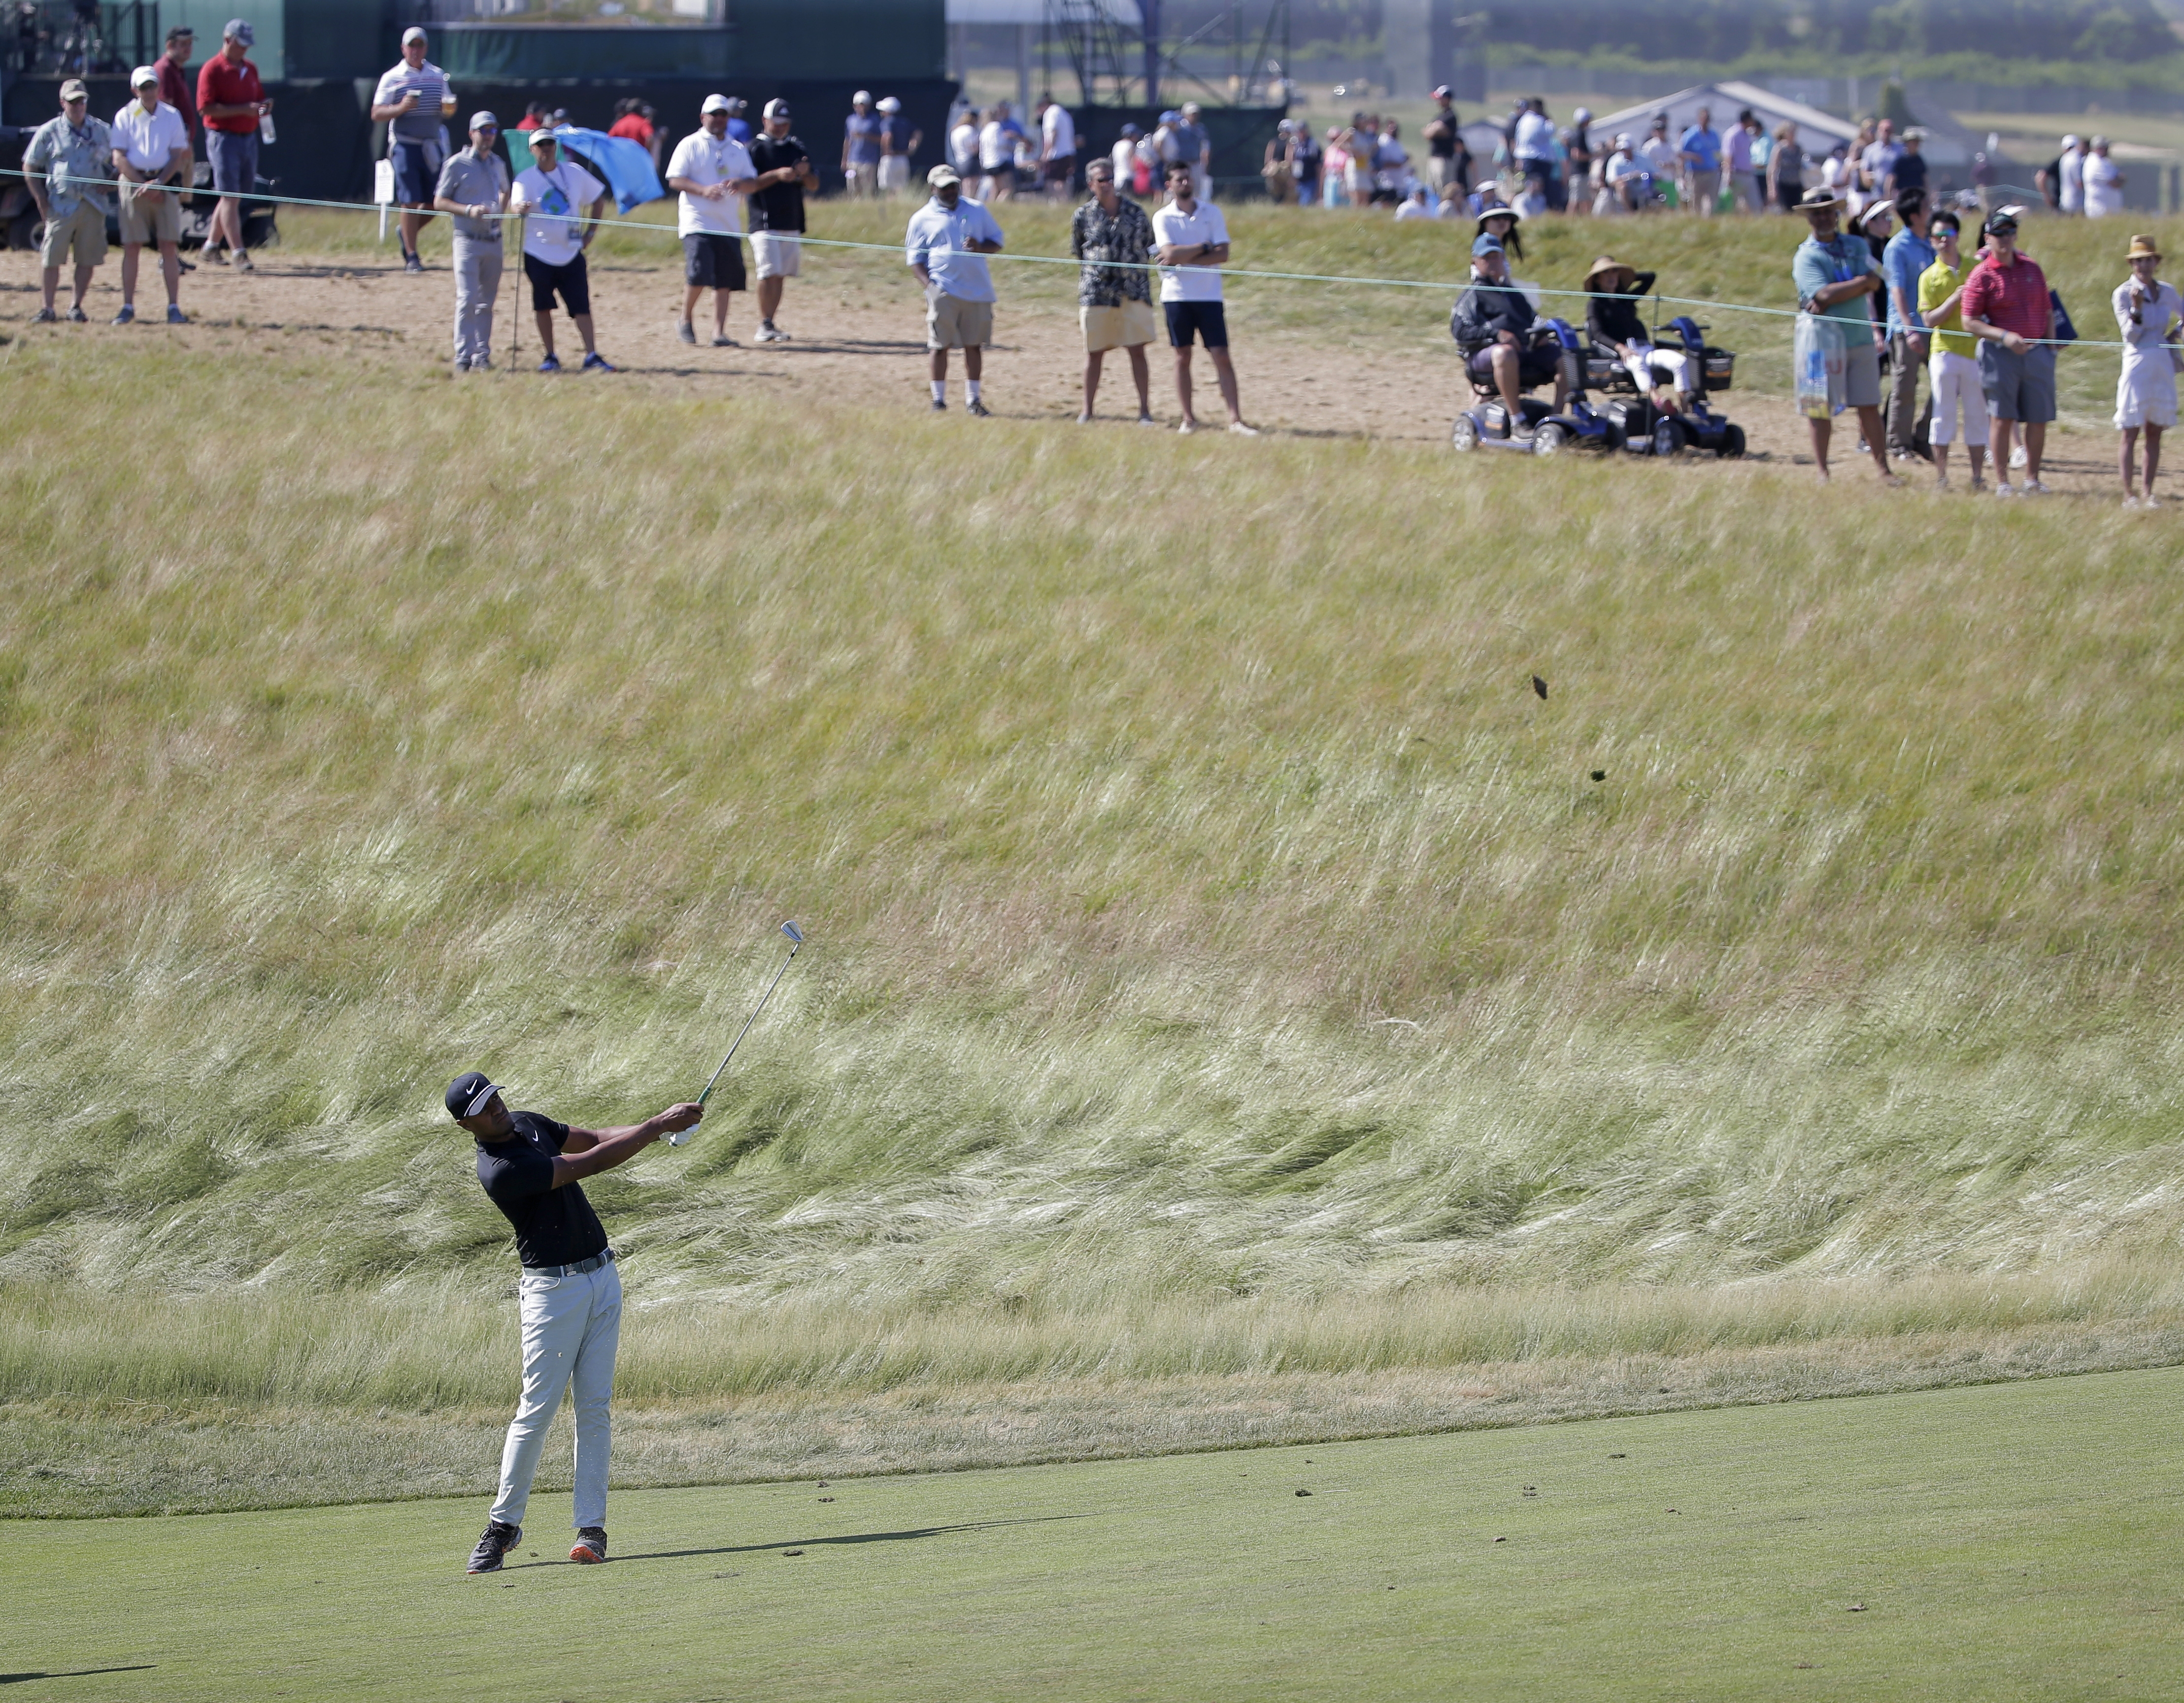 Tony Finau hits an approach shot on the ninth hole during the final round of the U.S. Open Golf Championship on June 17 in Southampton, N.Y.